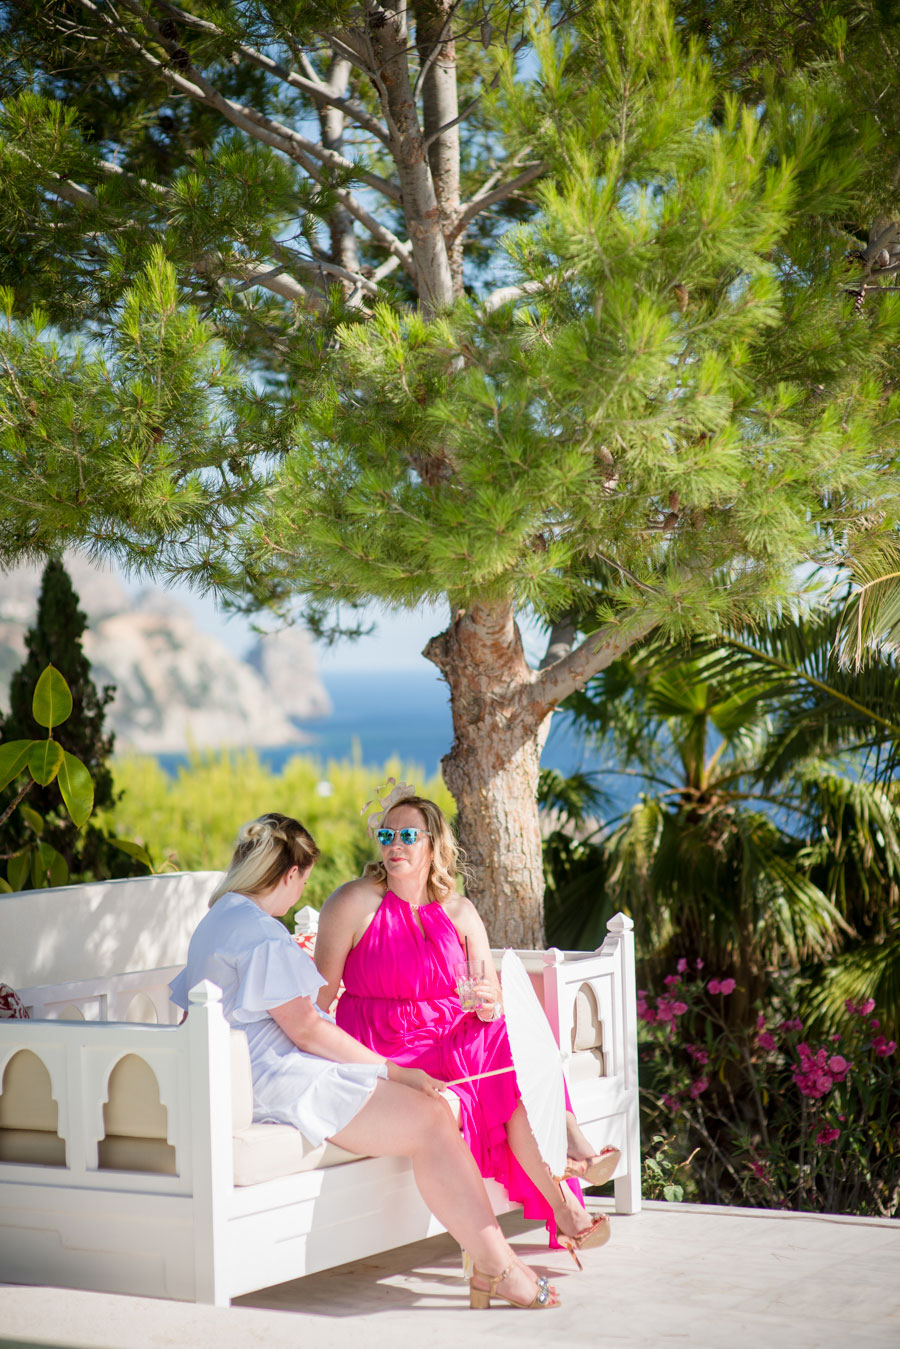 nicola-and-jimmy-es-vedra-ibiza-gypsy-westwood-photography-41